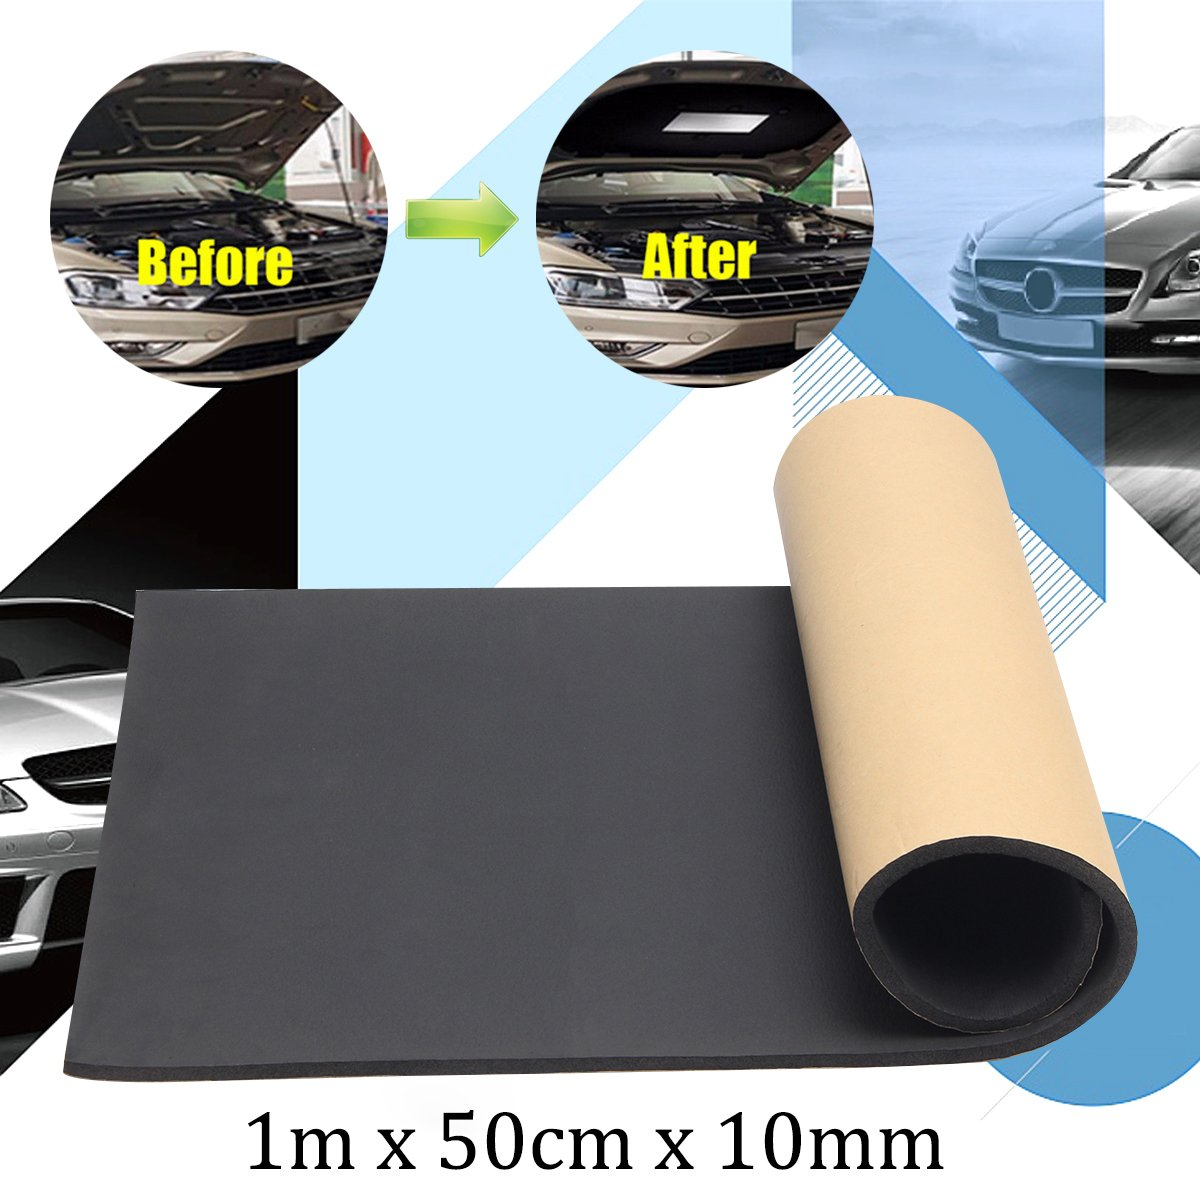 Jeteven 1m x 50cm High Density Foam Rubber Padding Roll Self Closed Cell Foam Waterproof Soundproof Insulation Thermal Foam Car Sound Deadening Mat 1m by Jeteven (Image #3)